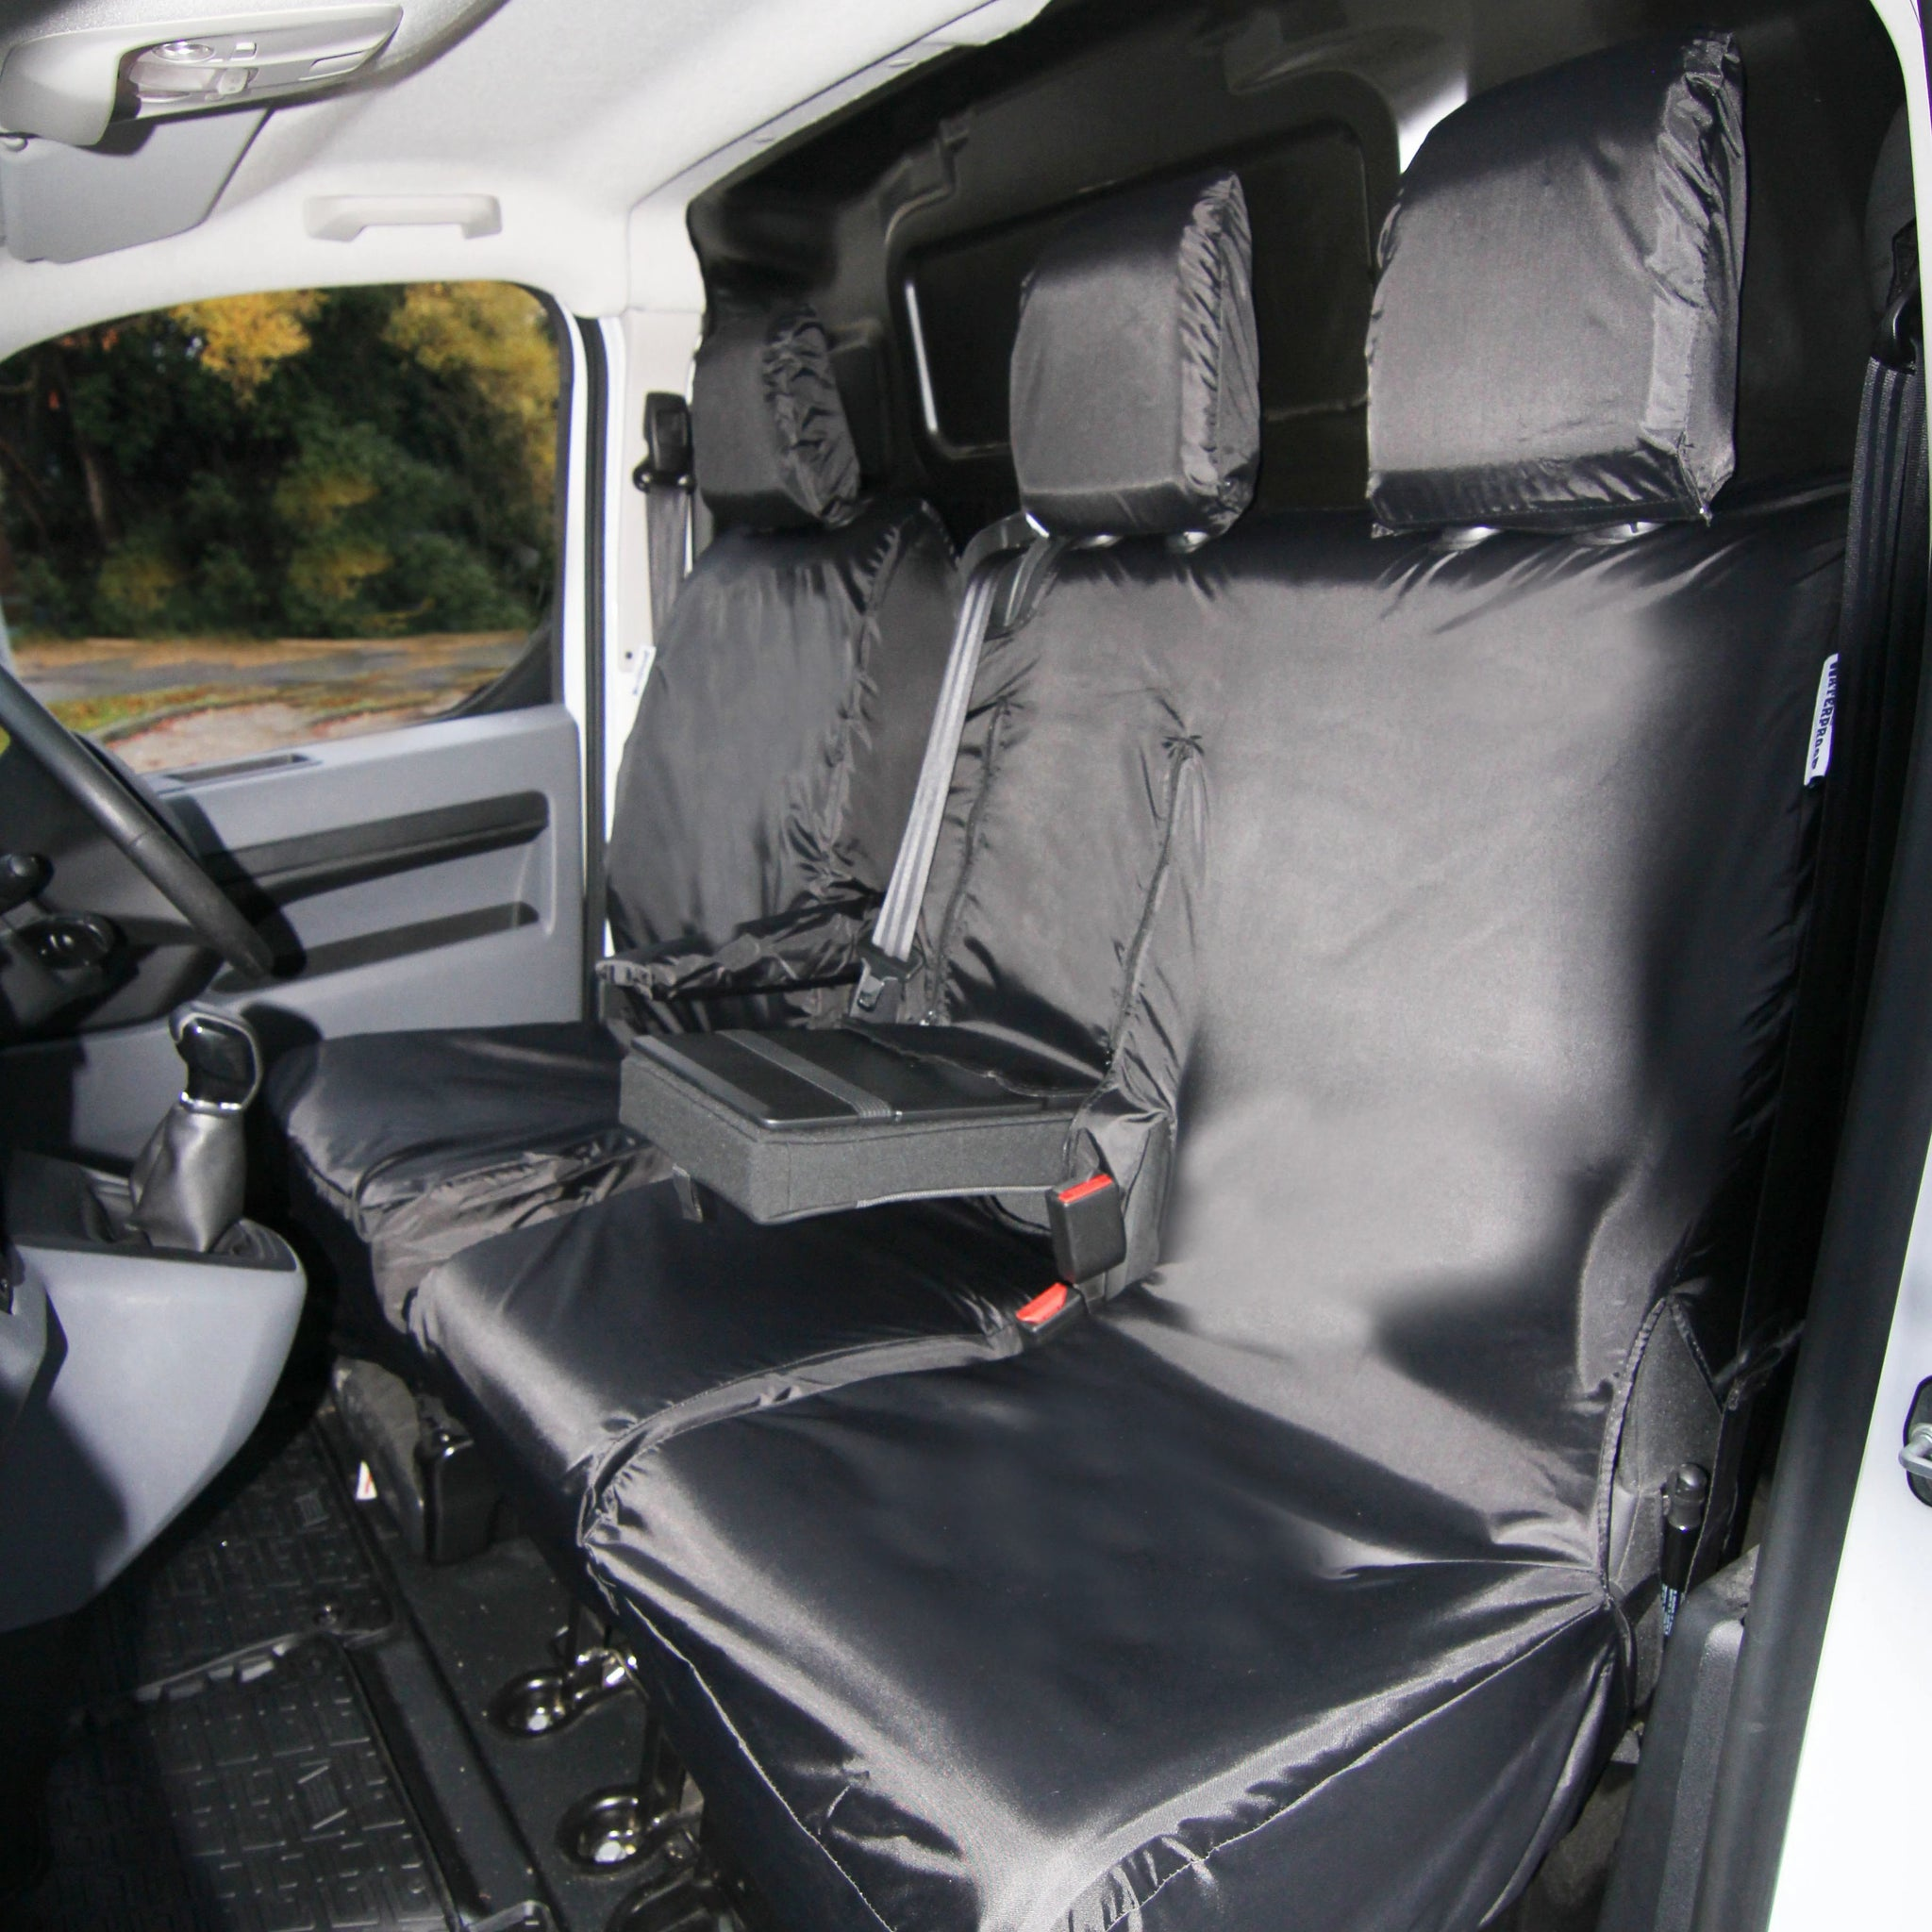 MERCEDES VITO 2+1 Van Seat Custom Covers protectors 100/% WATERPROOF HEAVY DUTY